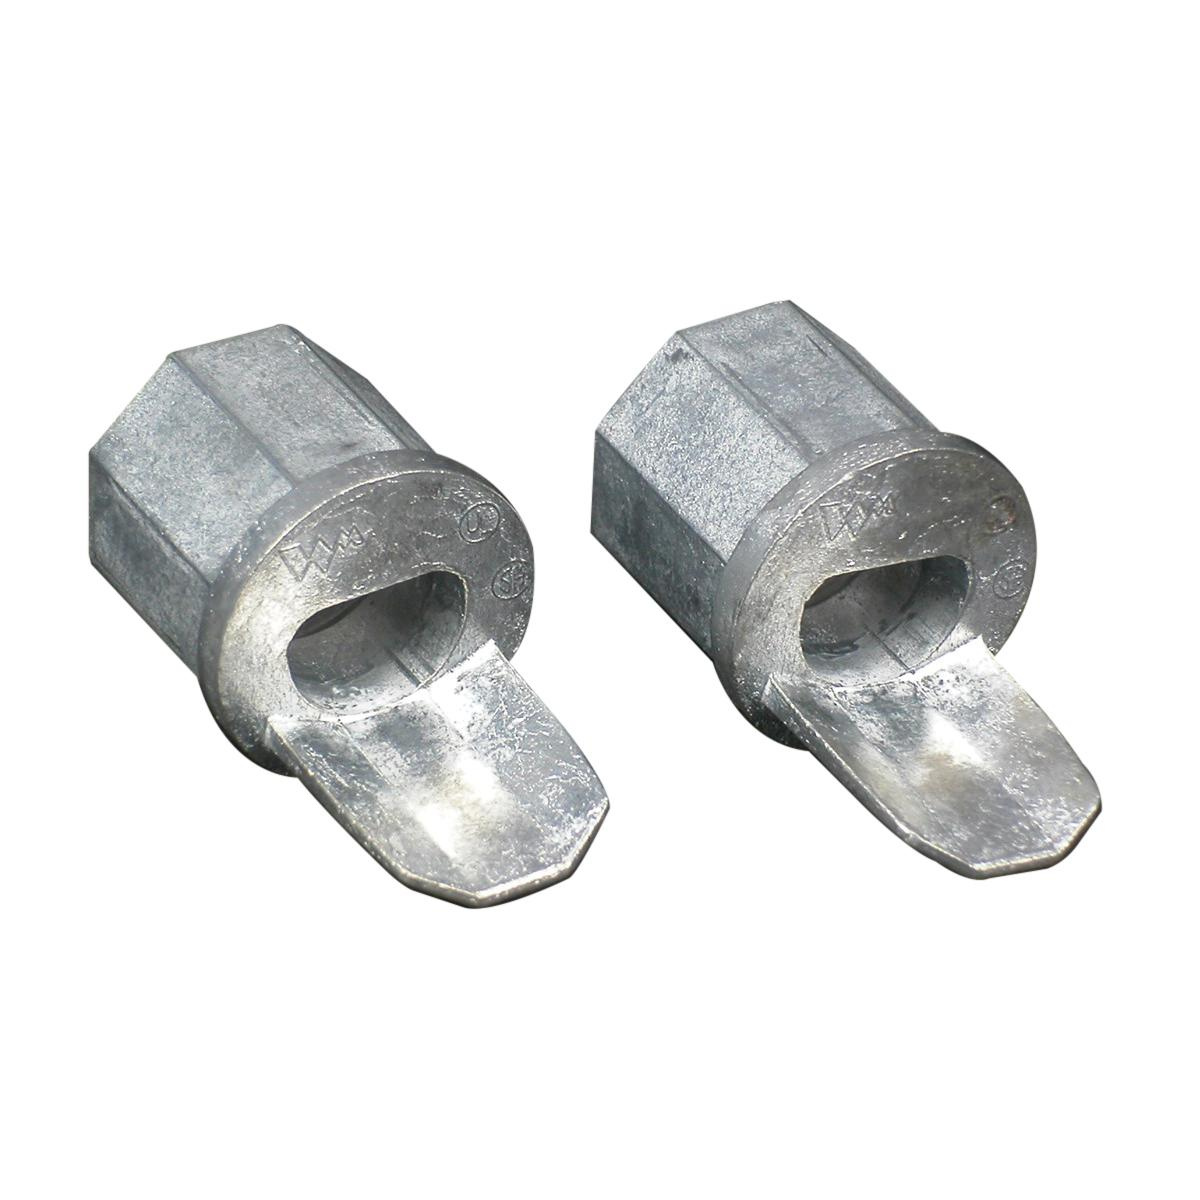 Wiremold 5782A Male Conduit Connector Fitting 3/4 Inch Steel ...